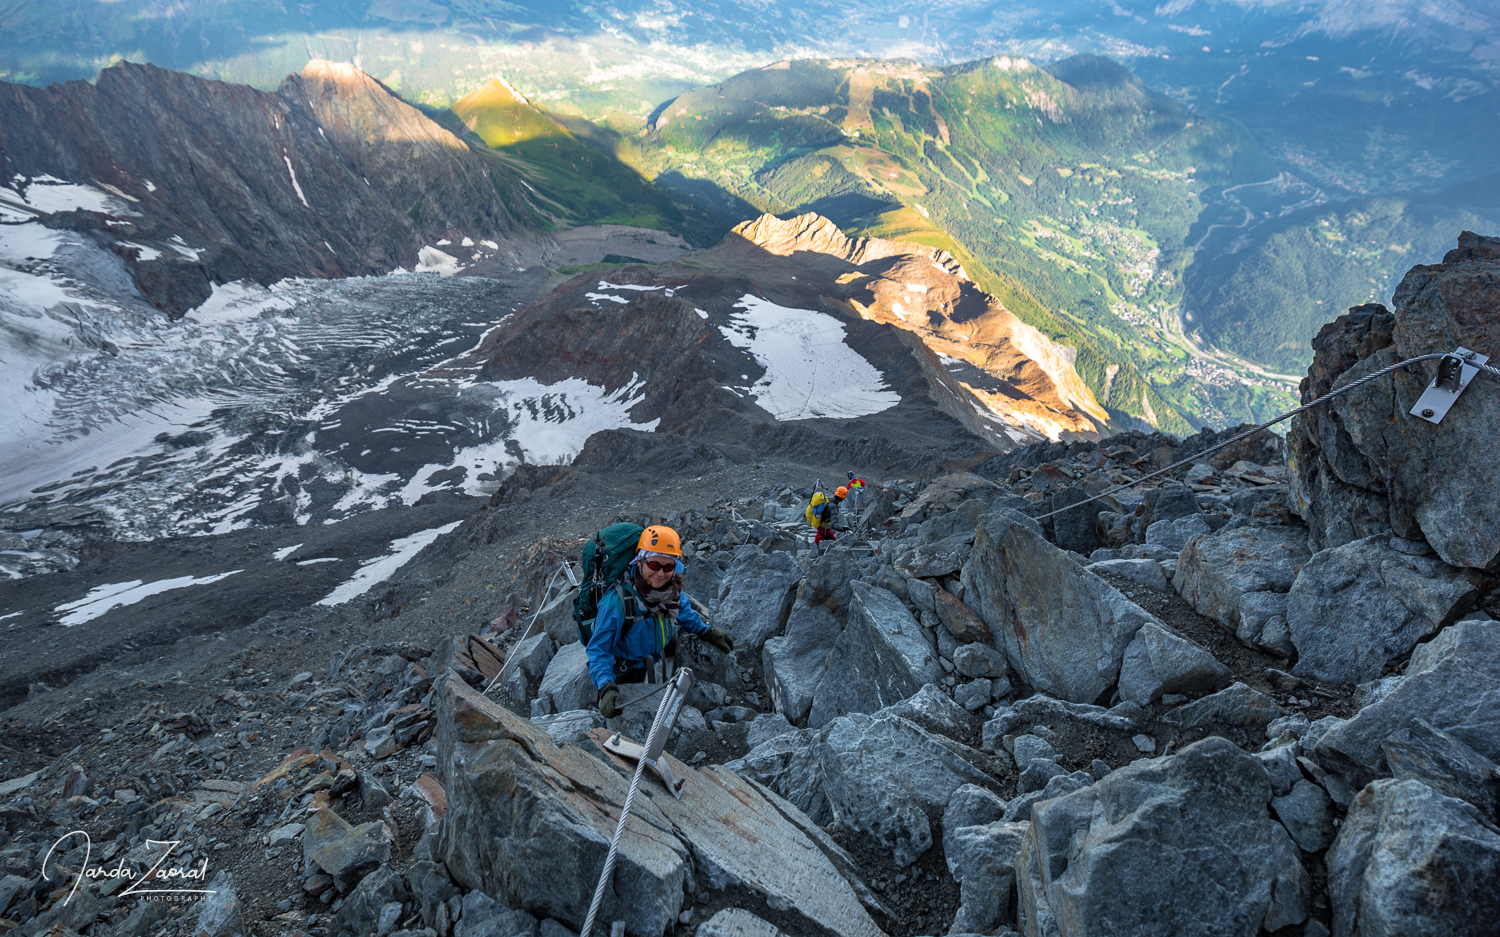 Climbing from Tete Rousse Hut to Gouter Hut